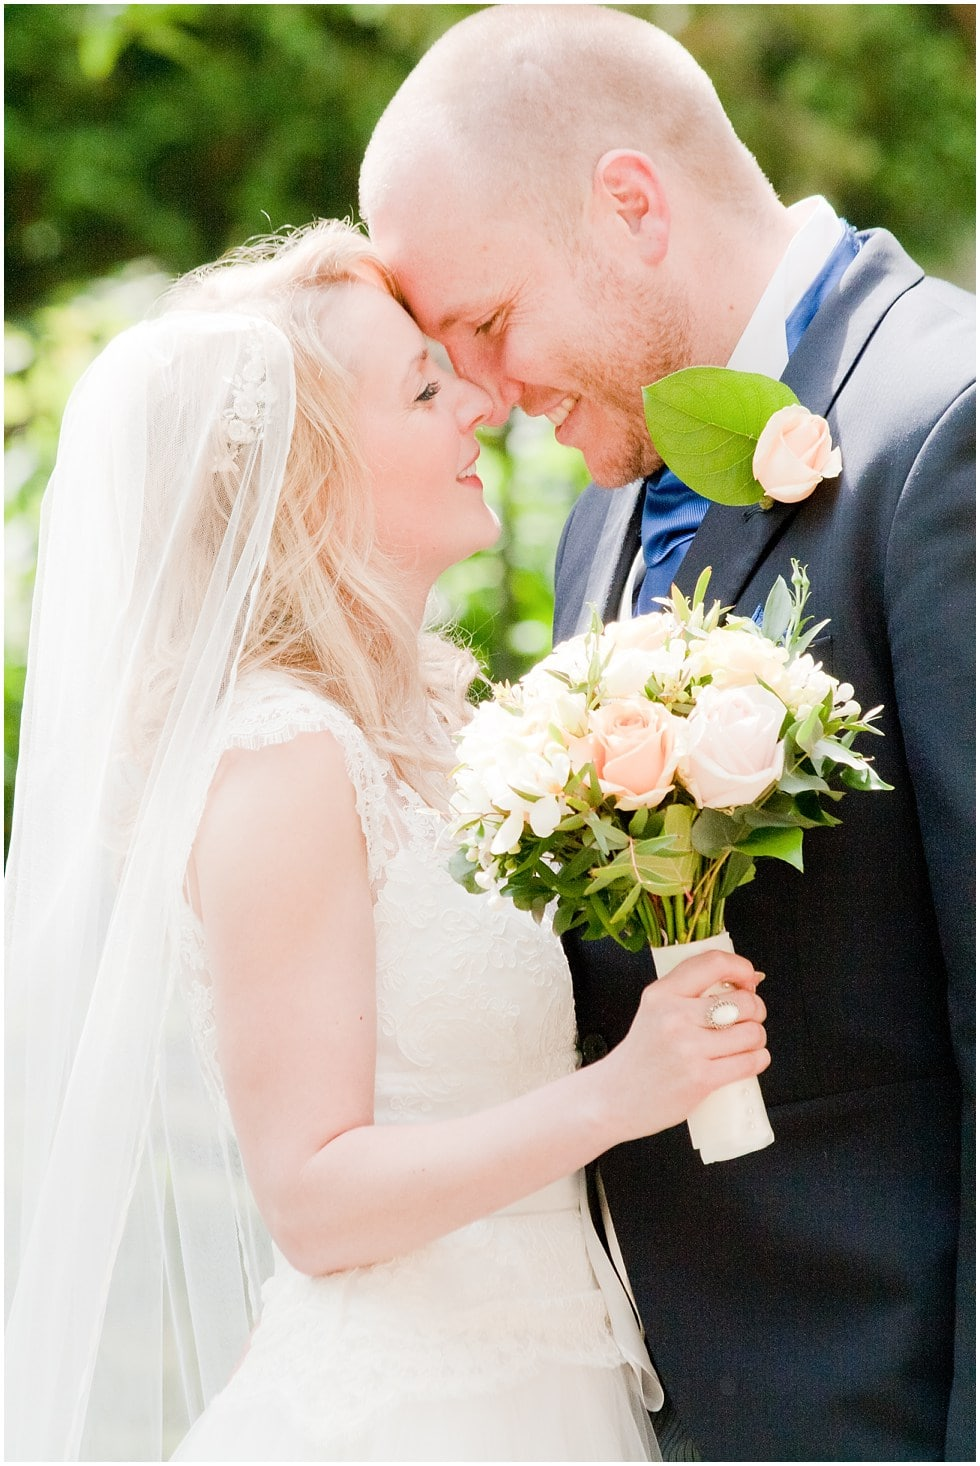 Beautiful couple shot of bride and groom foreheads together St Nicholas Church Chiswick London